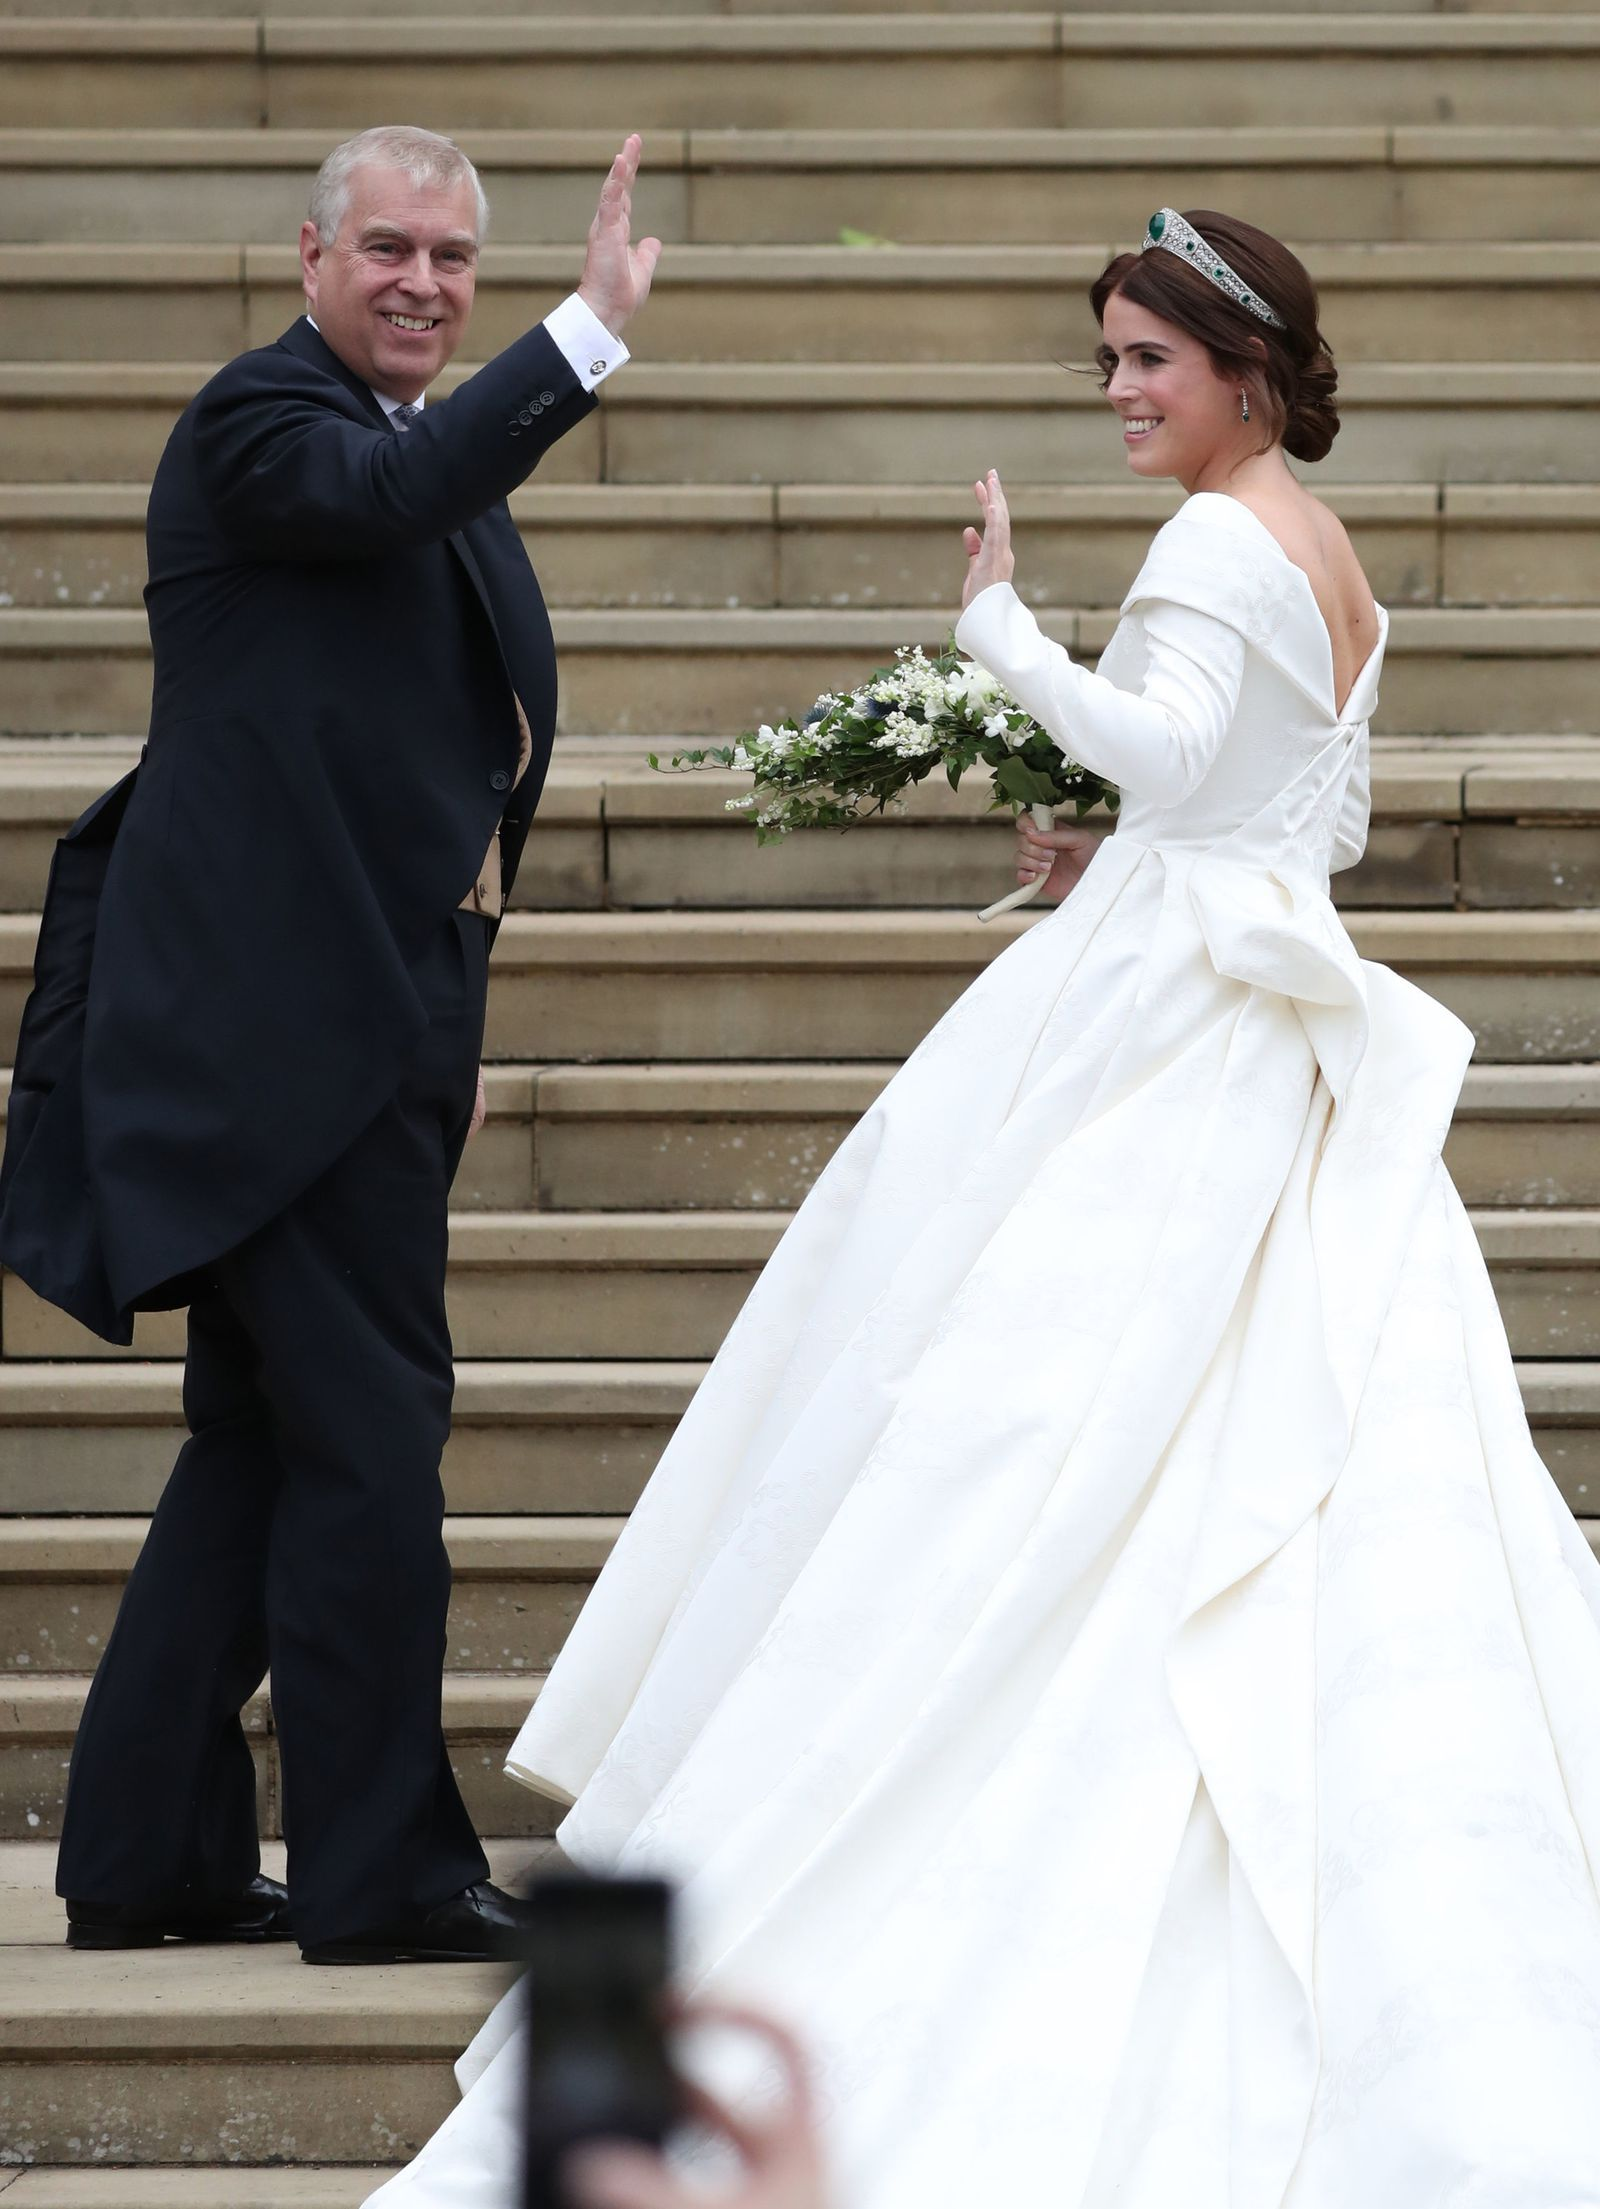 Take In All The Exquisite Detail Of Princess Eugenie S Peter Pilotto Wedding Dress With These Photos Eugenie Wedding Princess Wedding Royal Wedding Gowns [ 2209 x 1600 Pixel ]